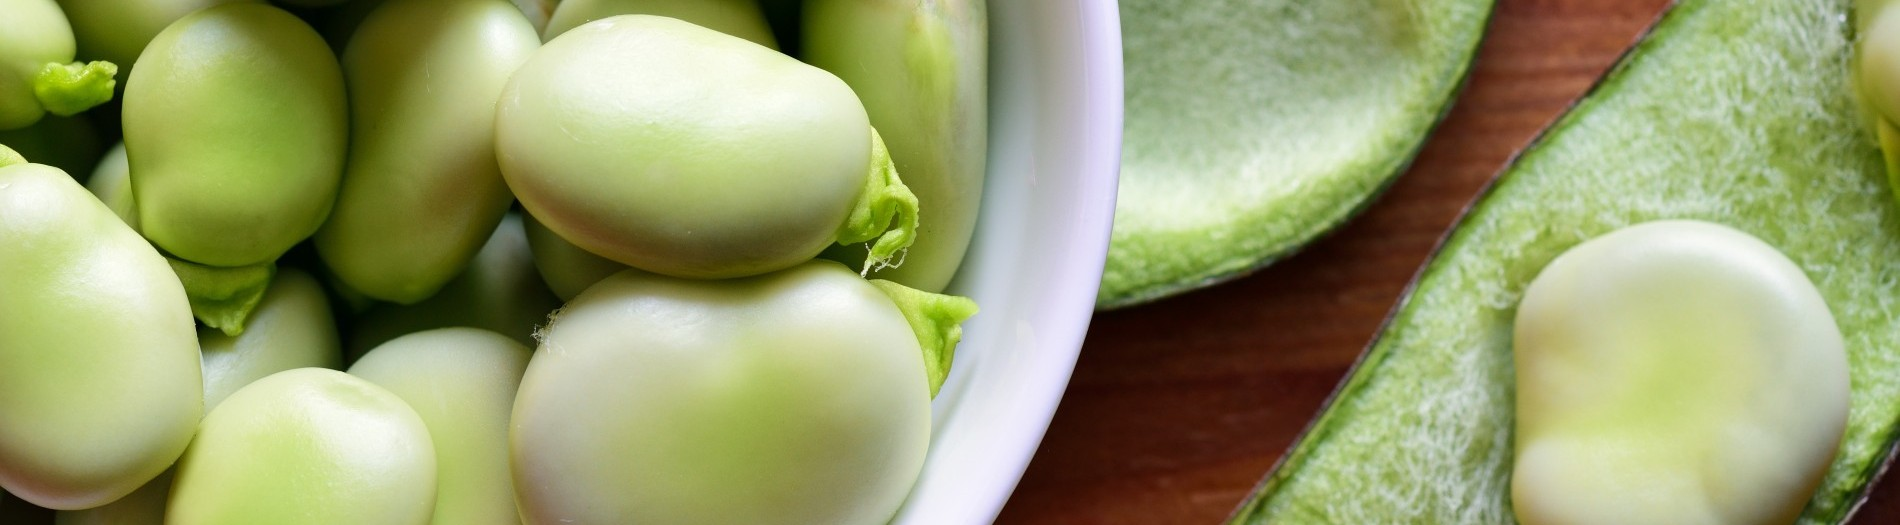 Favuleux: Developing Fava bean as a sustainable source of high quality protein for food, through optimized genetics, farming & processing